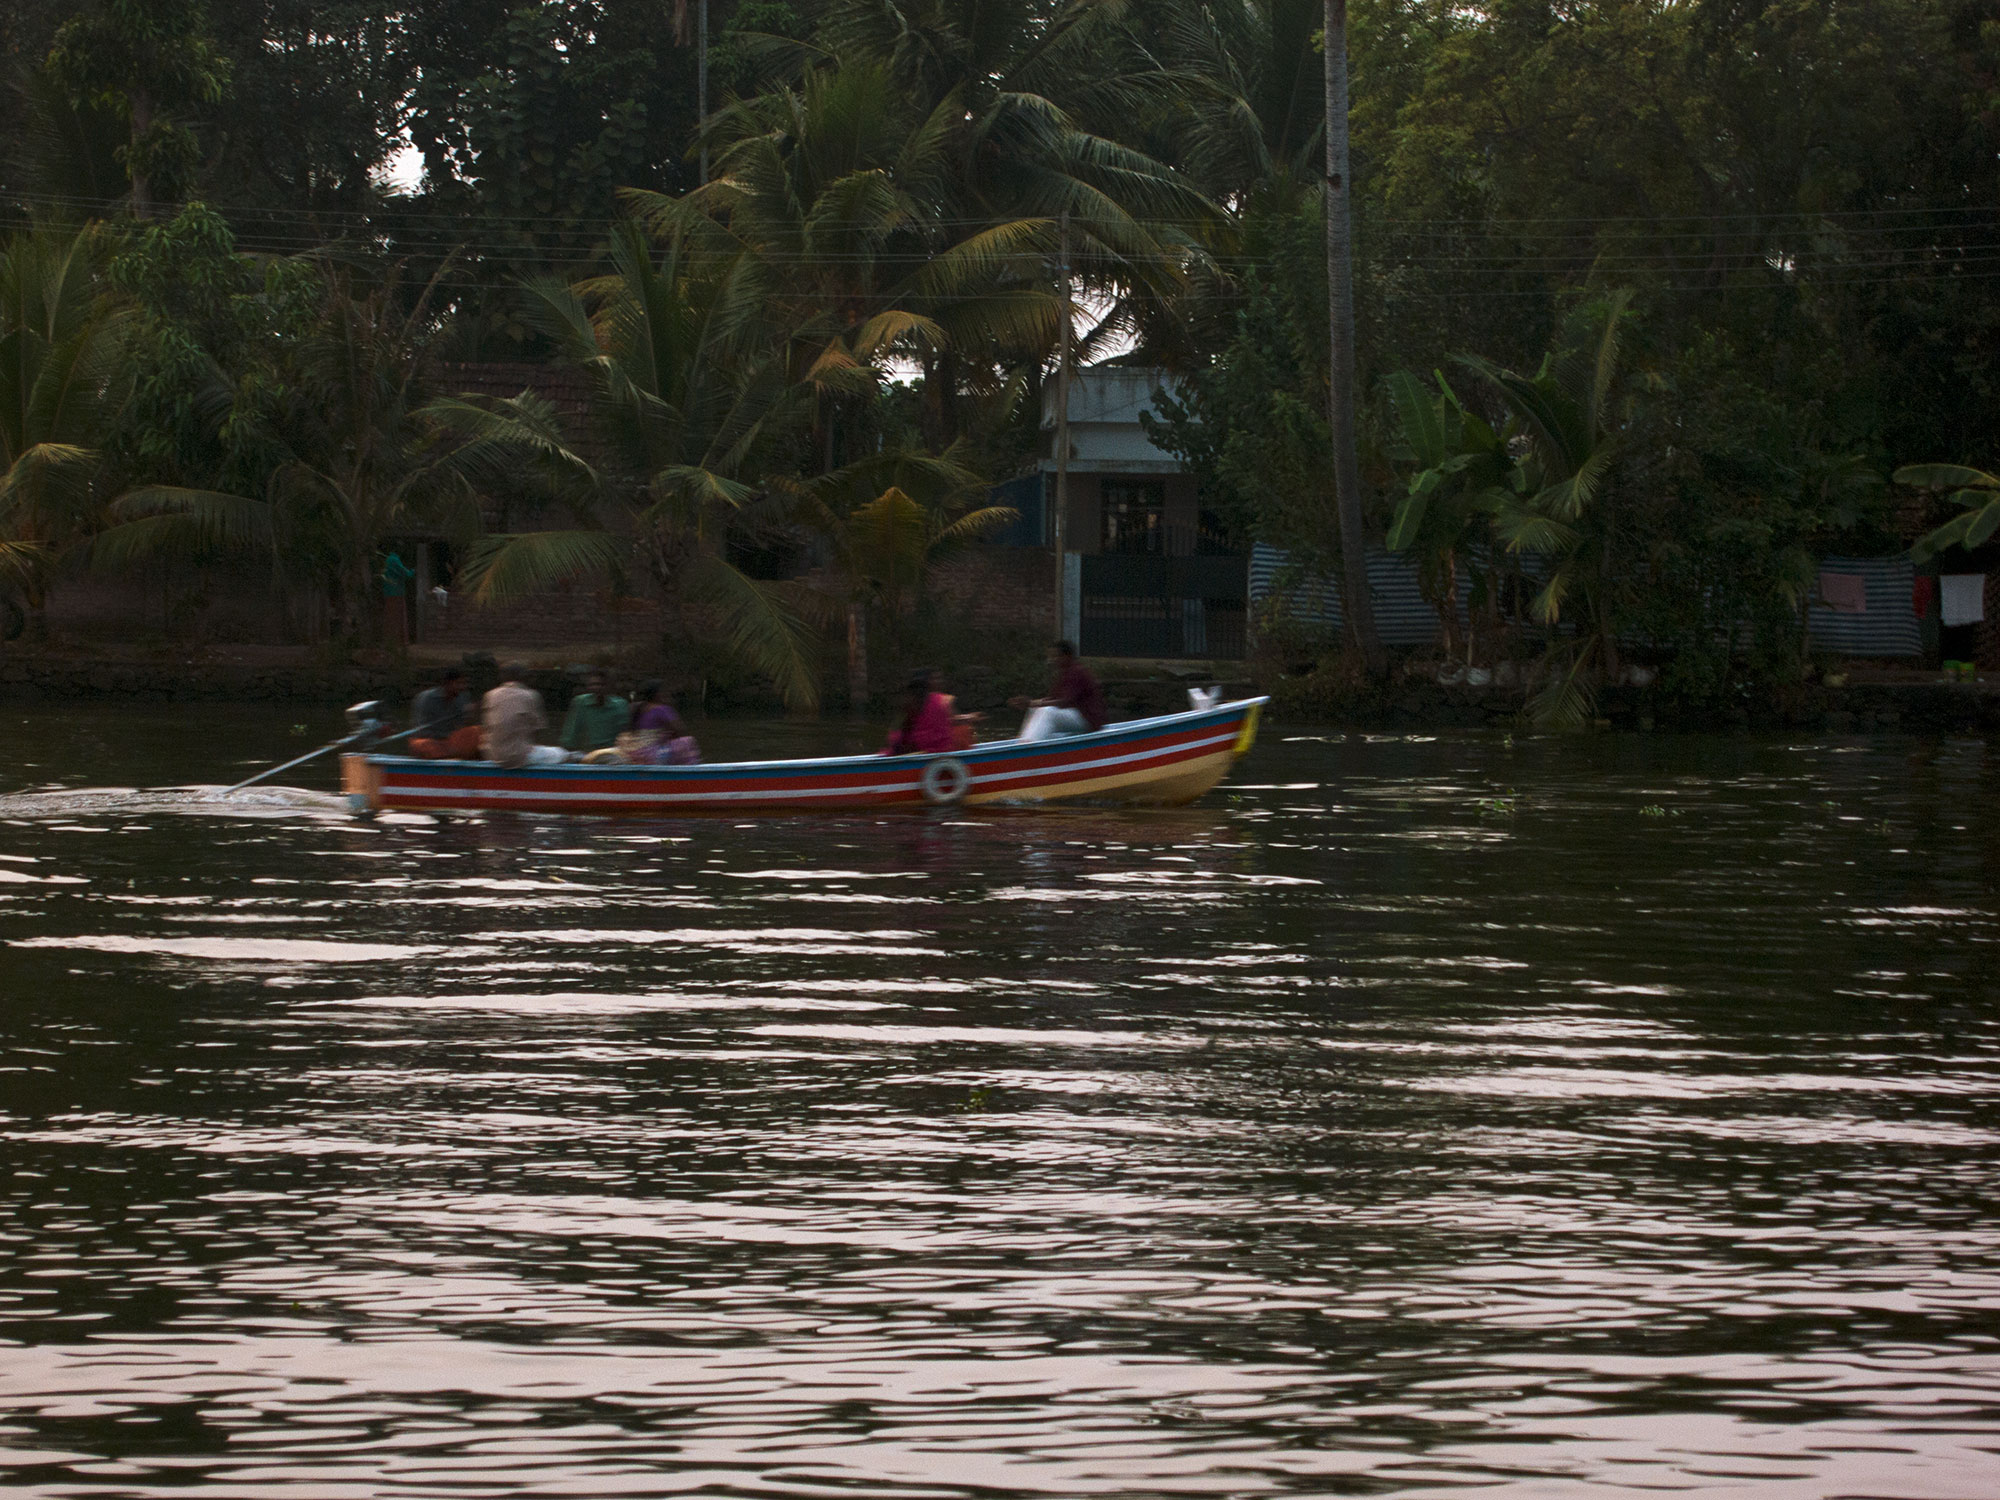 Family in a boat at dusk.